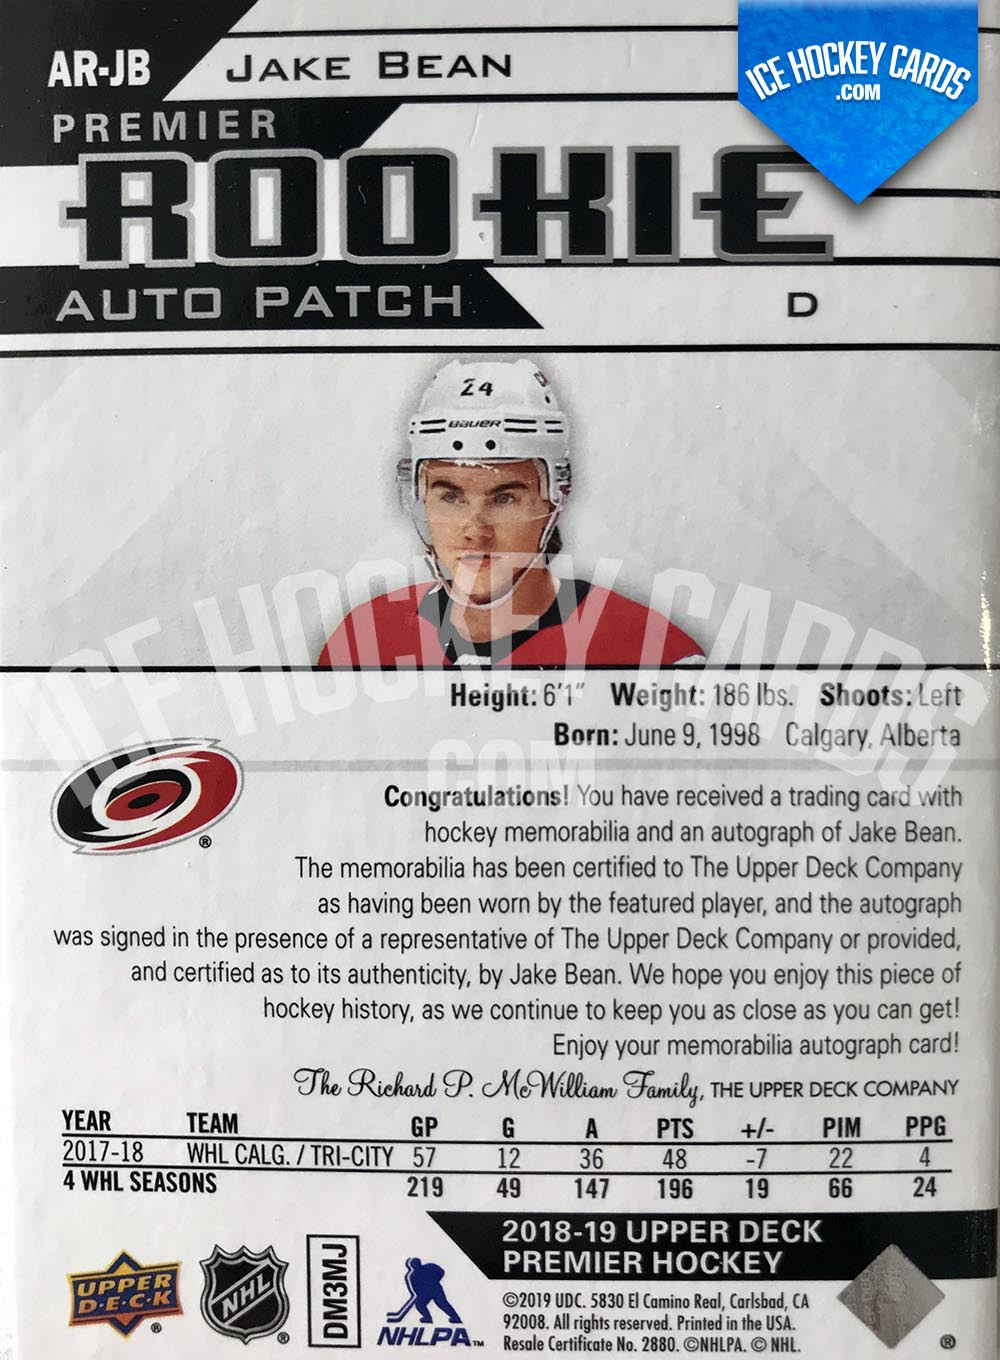 Upper Deck - Premier 2018-19 - Jake Bean Premier Rookie Auto Patch Card back